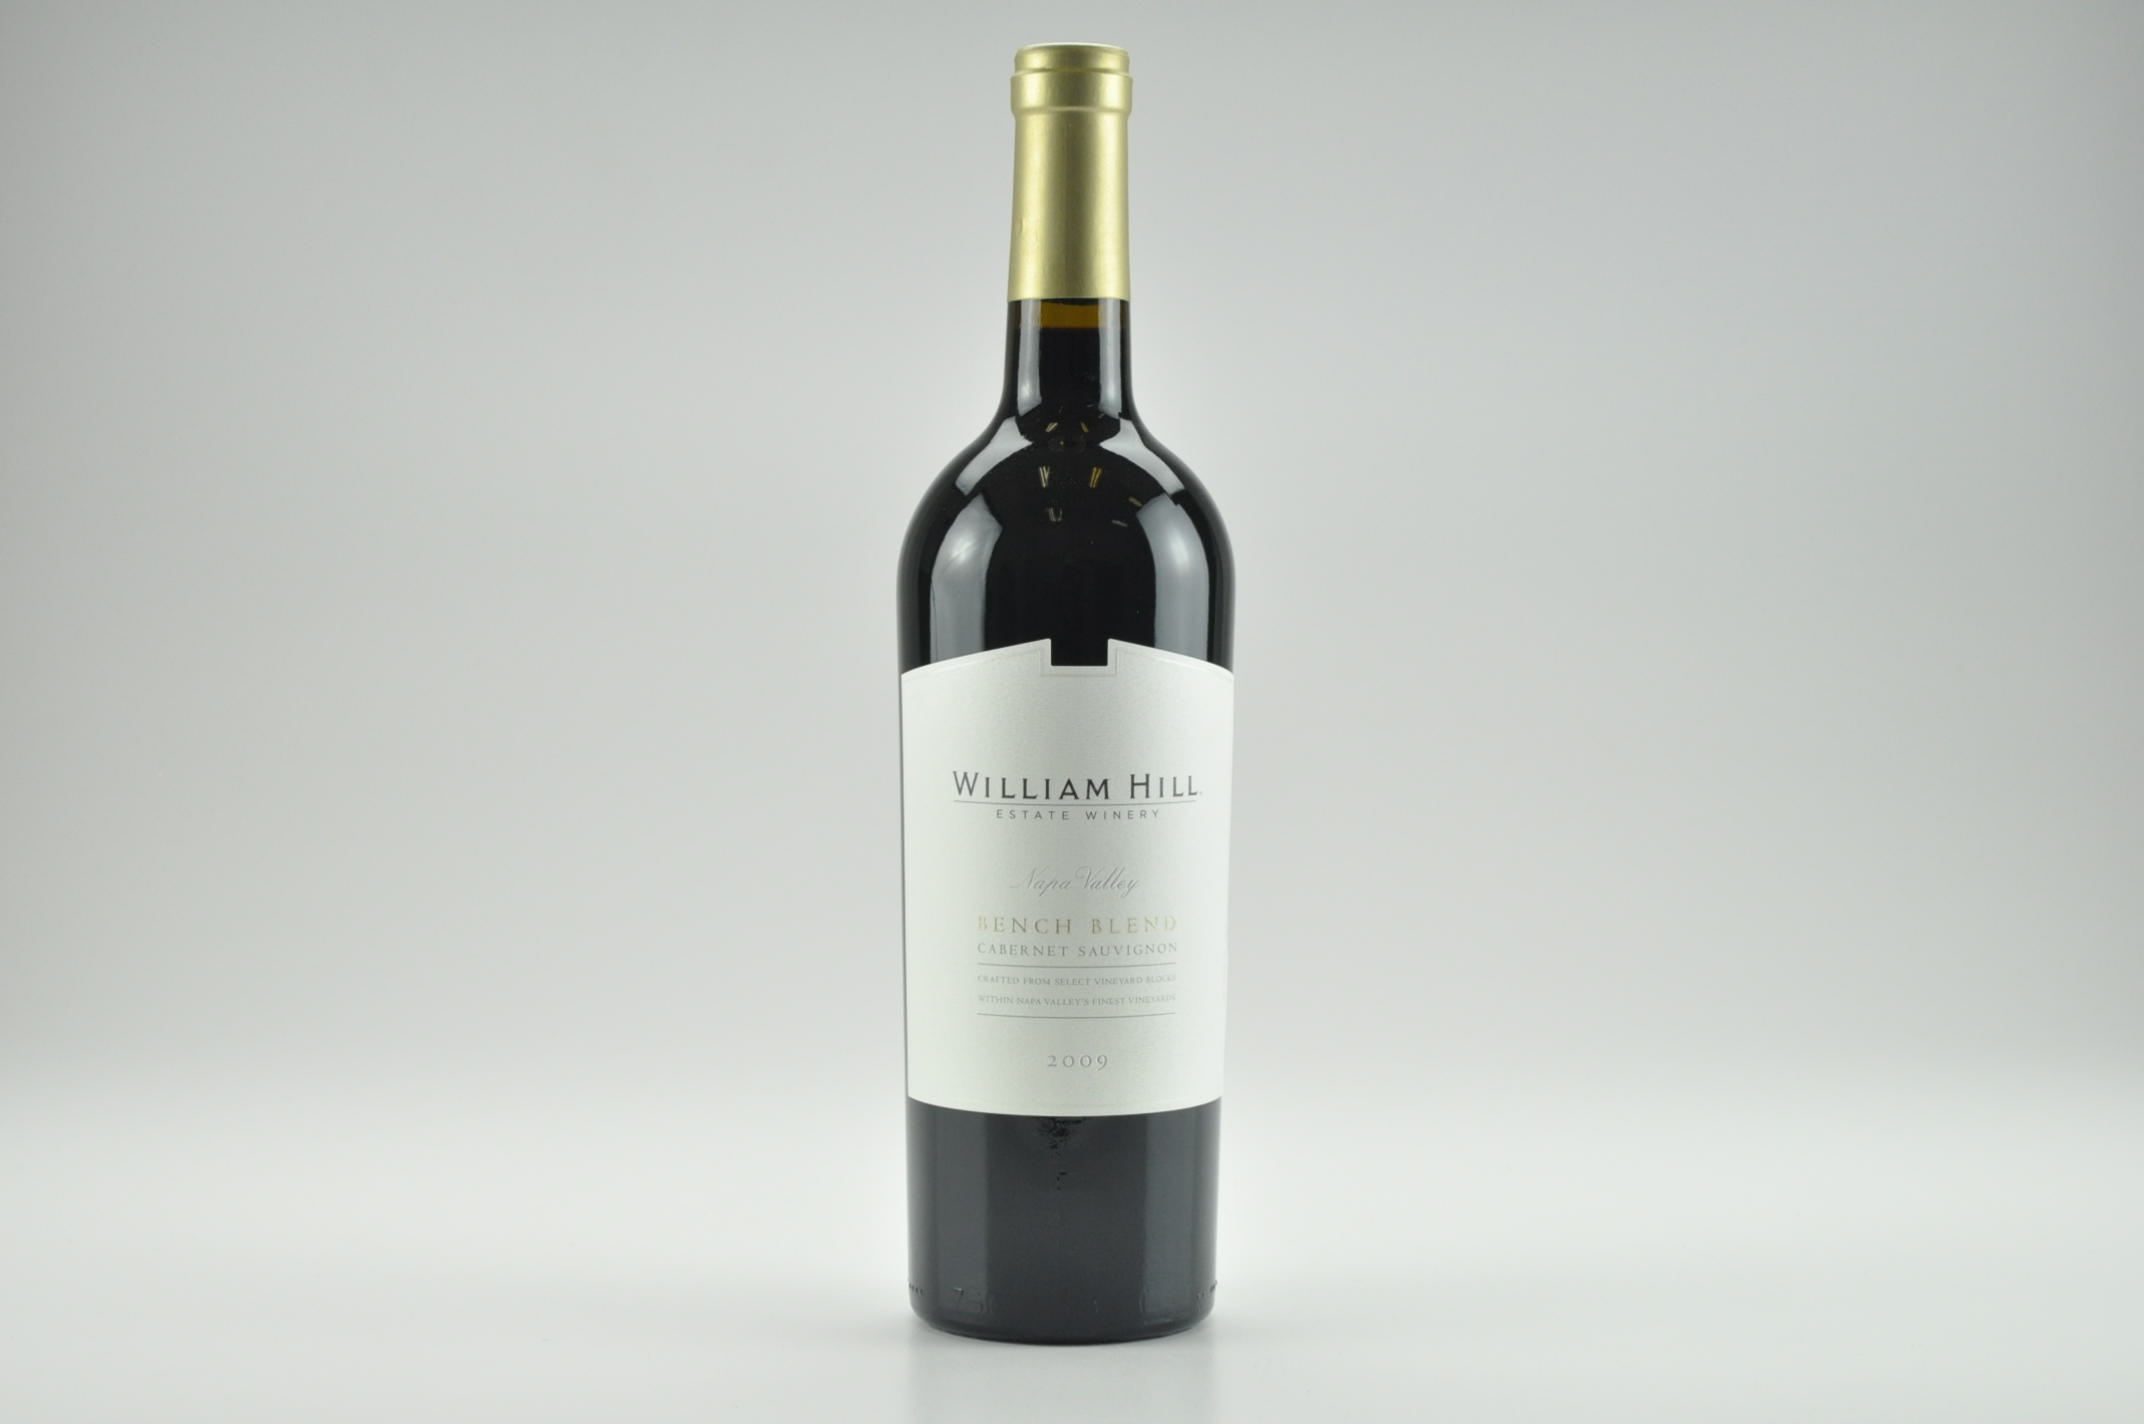 2009 William Hill Bench Blend Cabernet Sauvignon AG--92